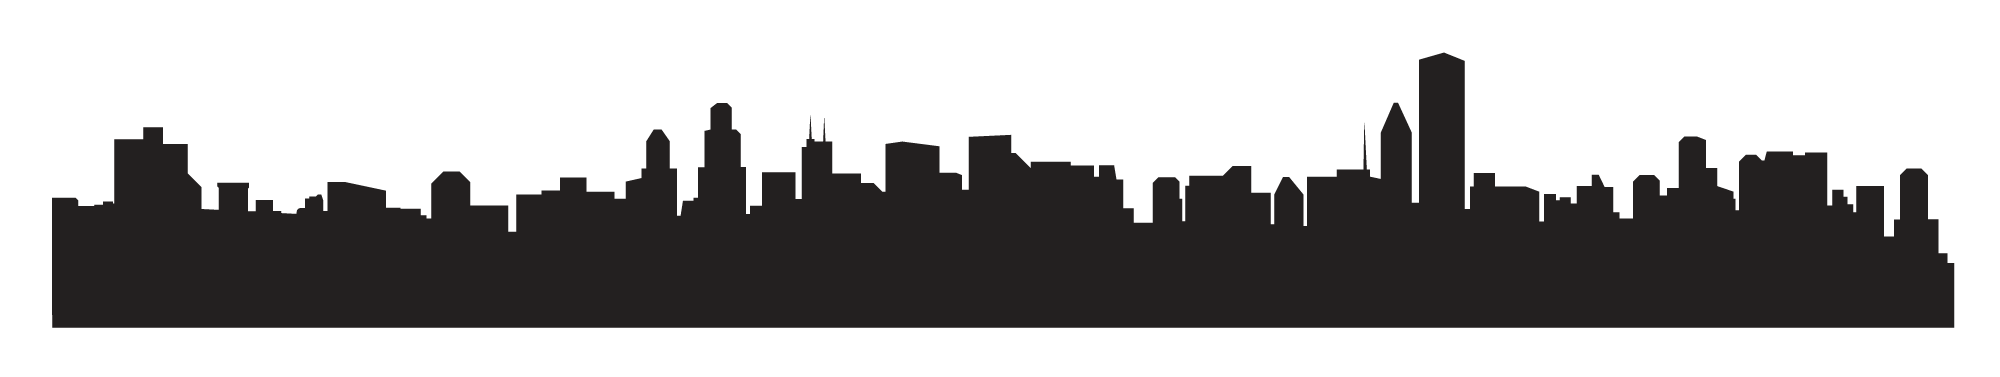 city skyline silhouette png